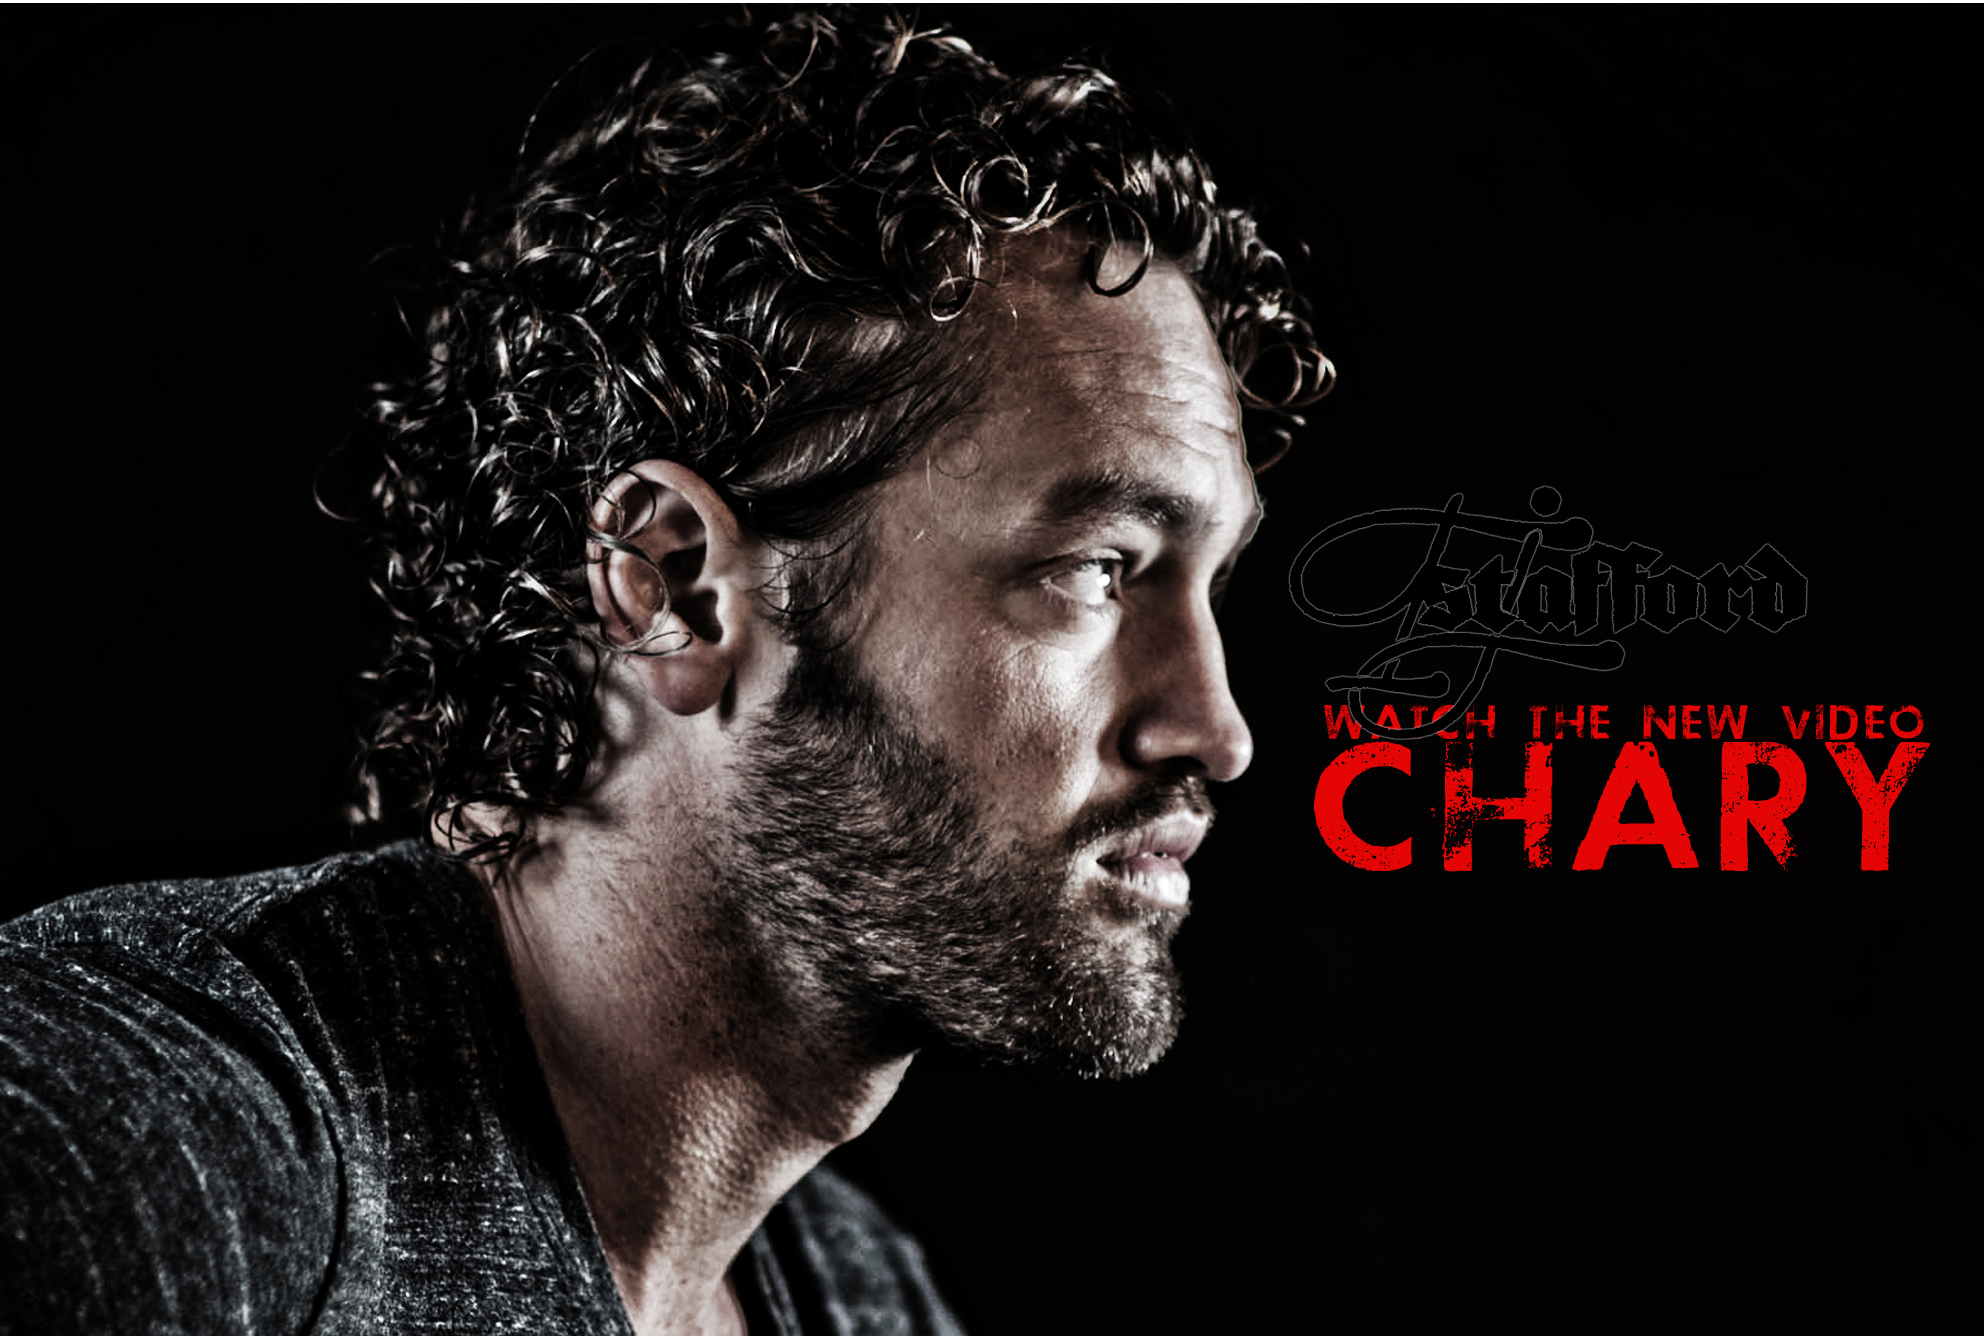 TJ_email_Header_CHARY1